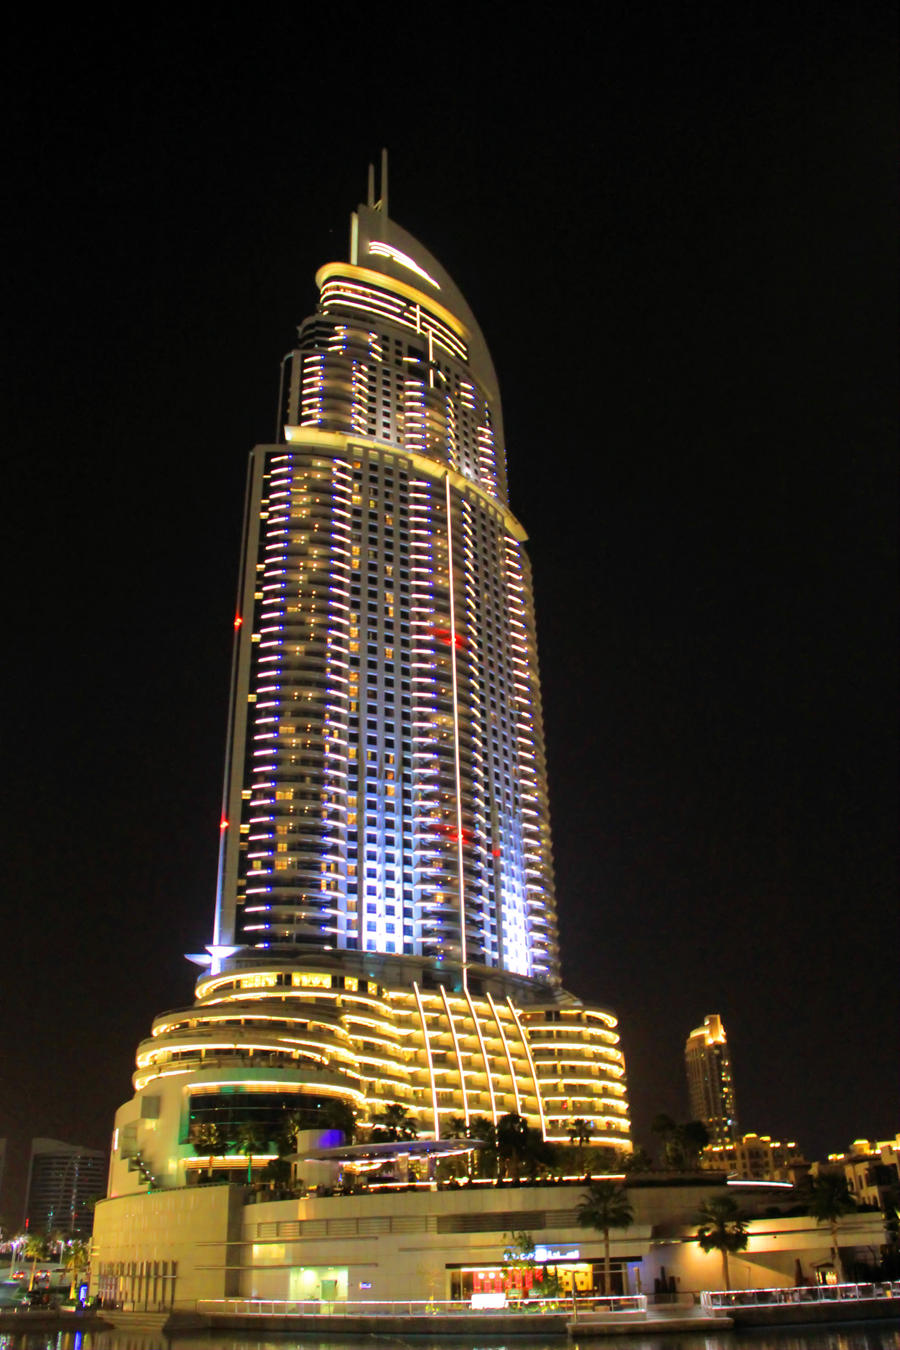 Dubai address downtown hotel 1 by giardqatar on deviantart for List of hotels in dubai with contact details